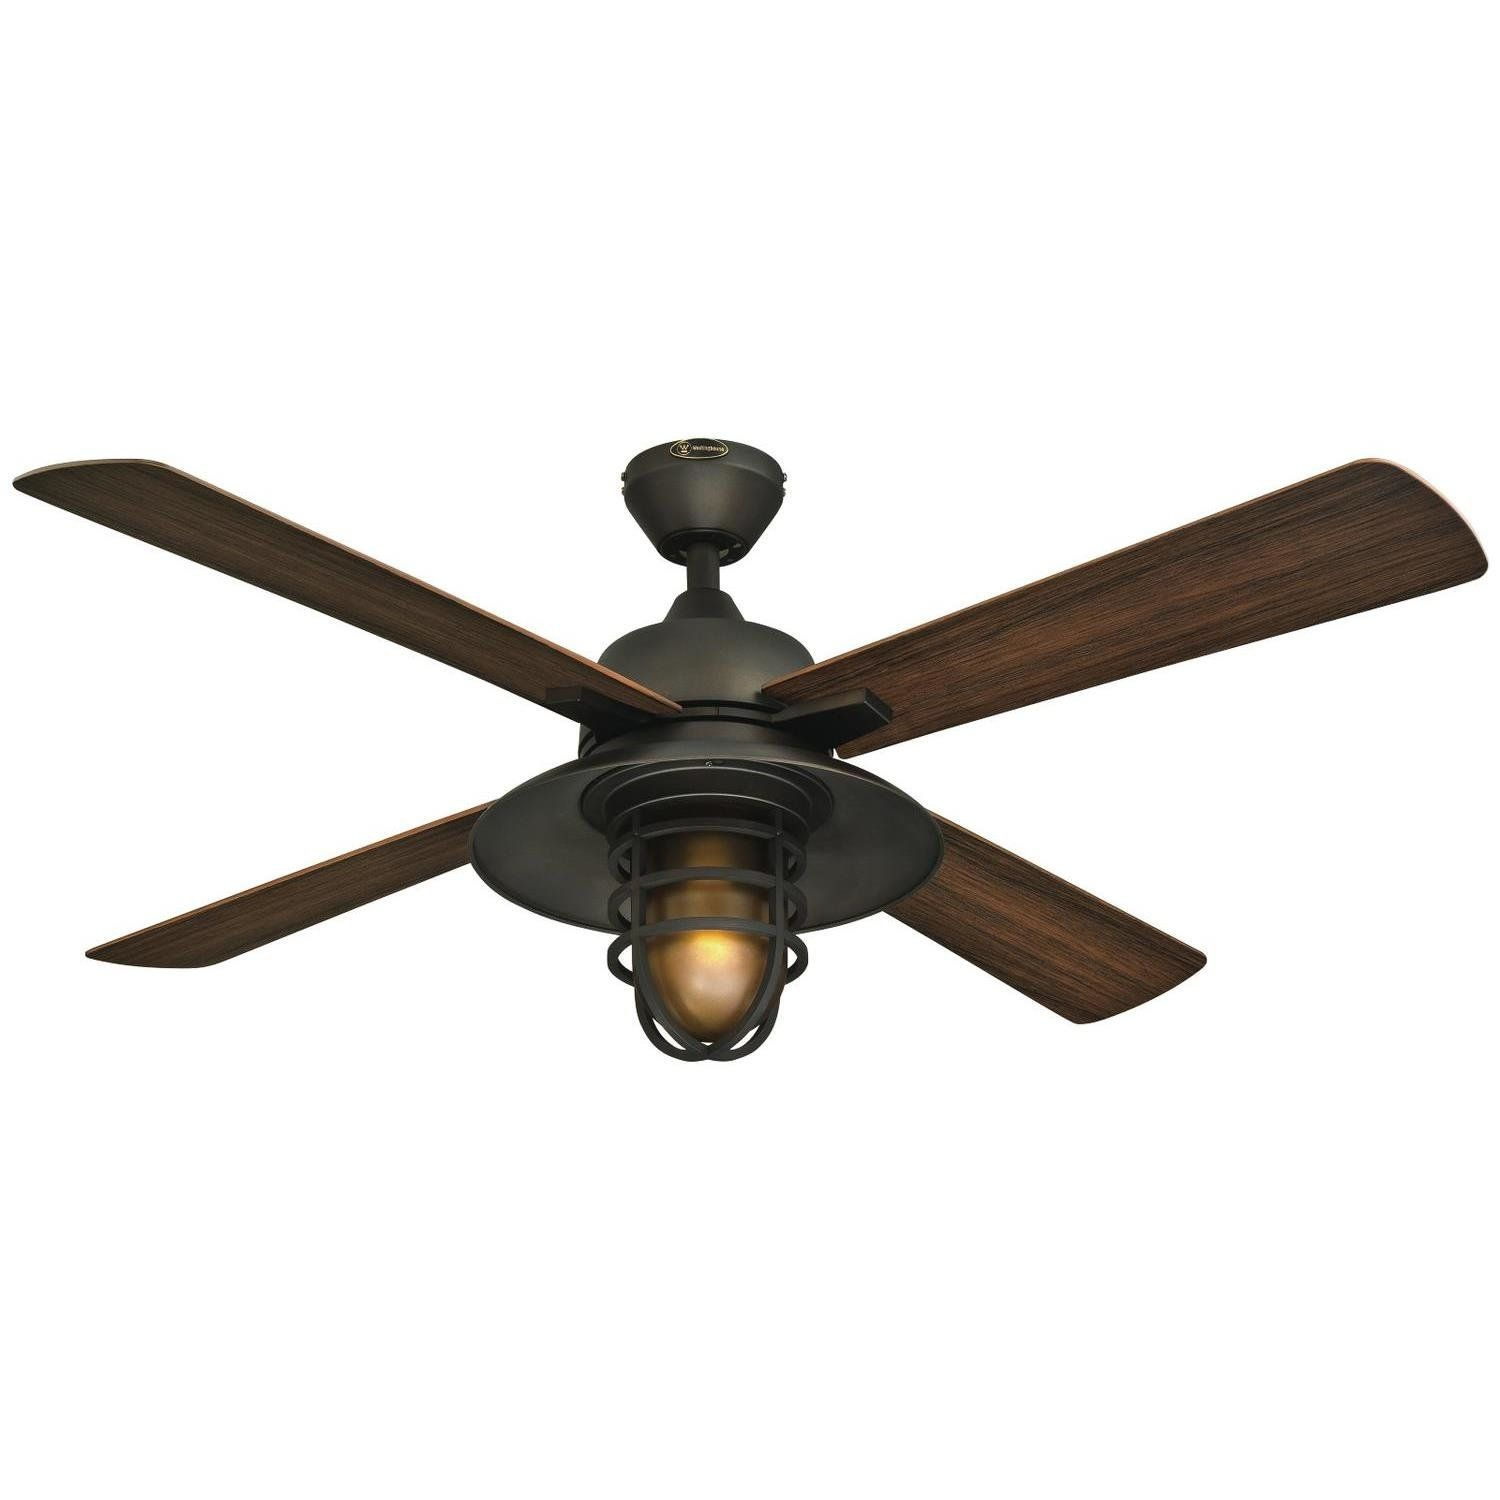 52 Barcus 4 Blade Ceiling Fan Light Kit Included Outdoor